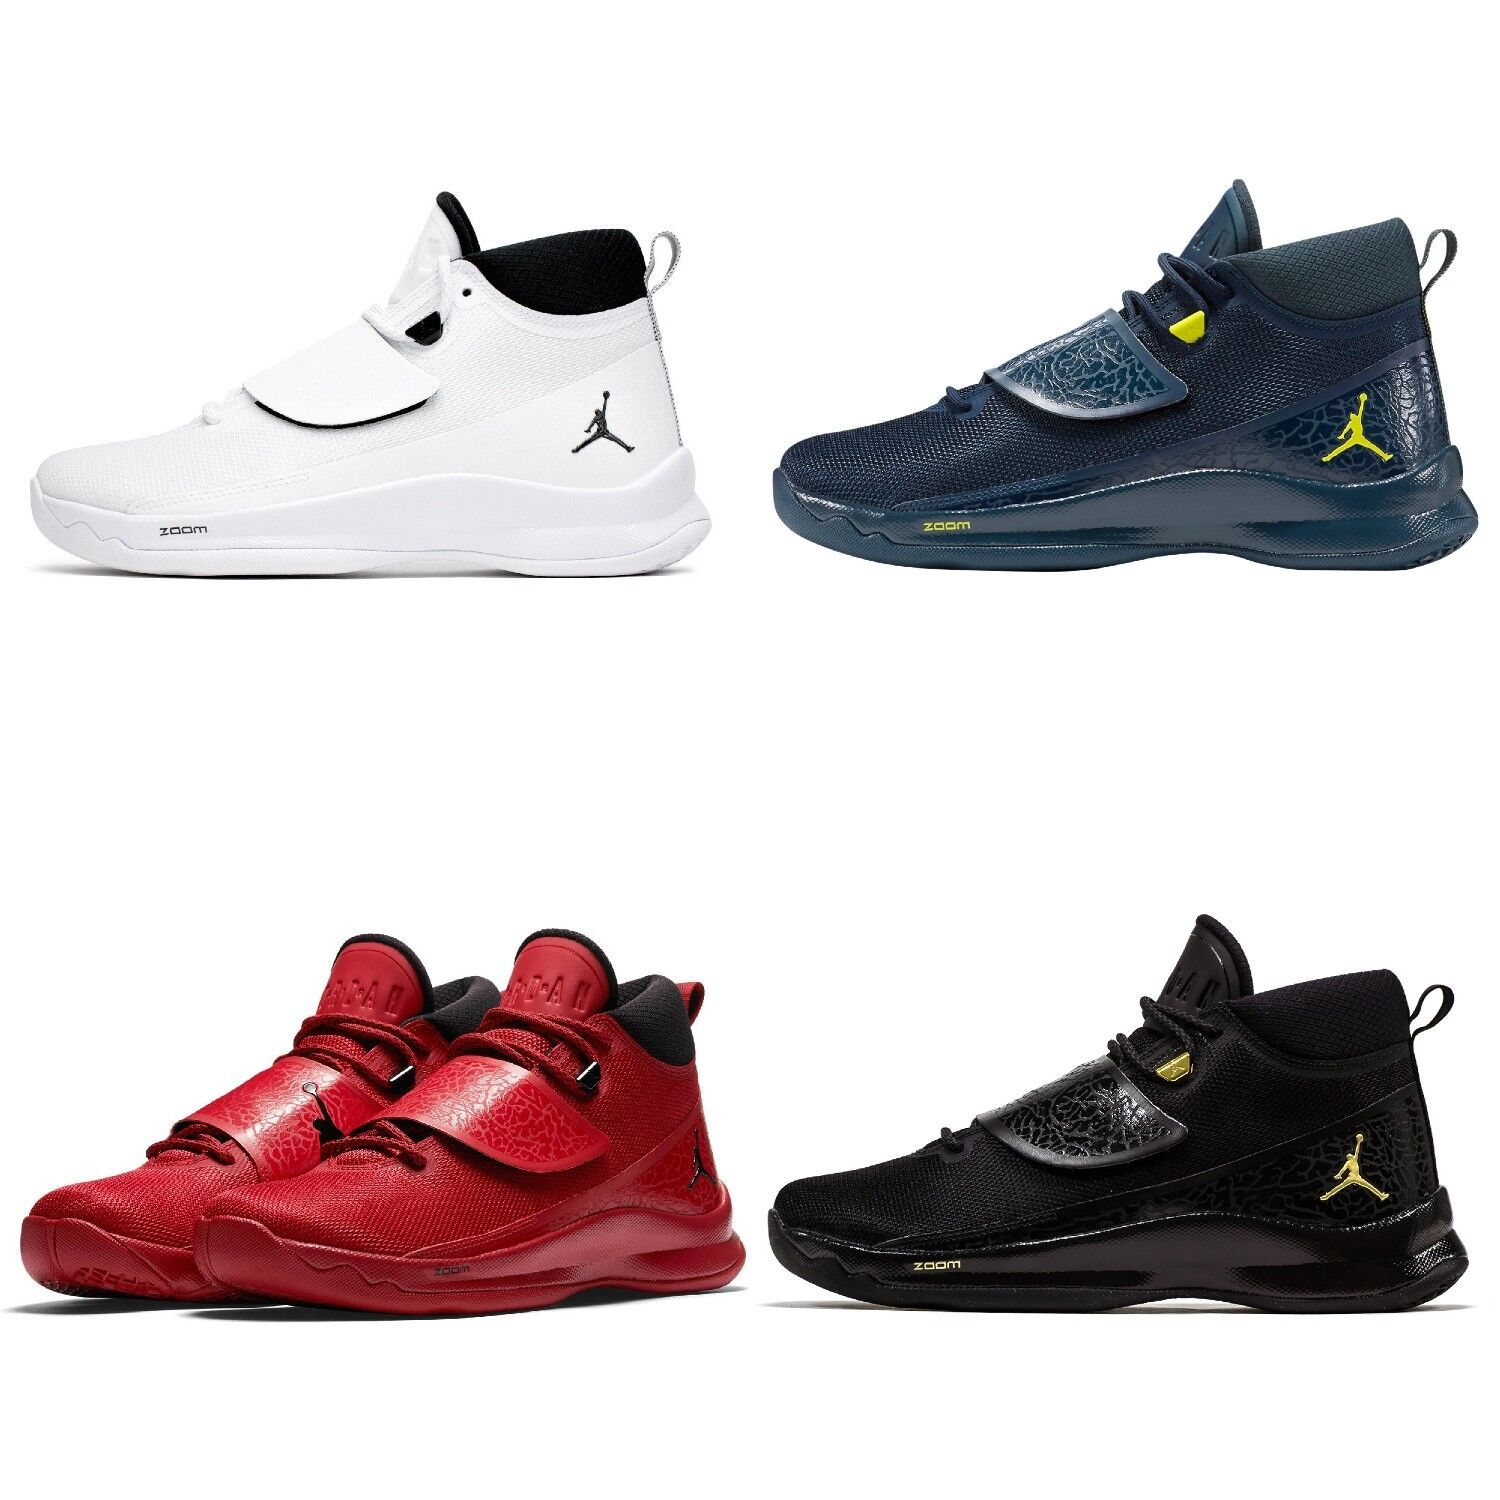 Nike Jordan Super Fly PO Basketball shoes Sports shoes Sneaker Leather Textile